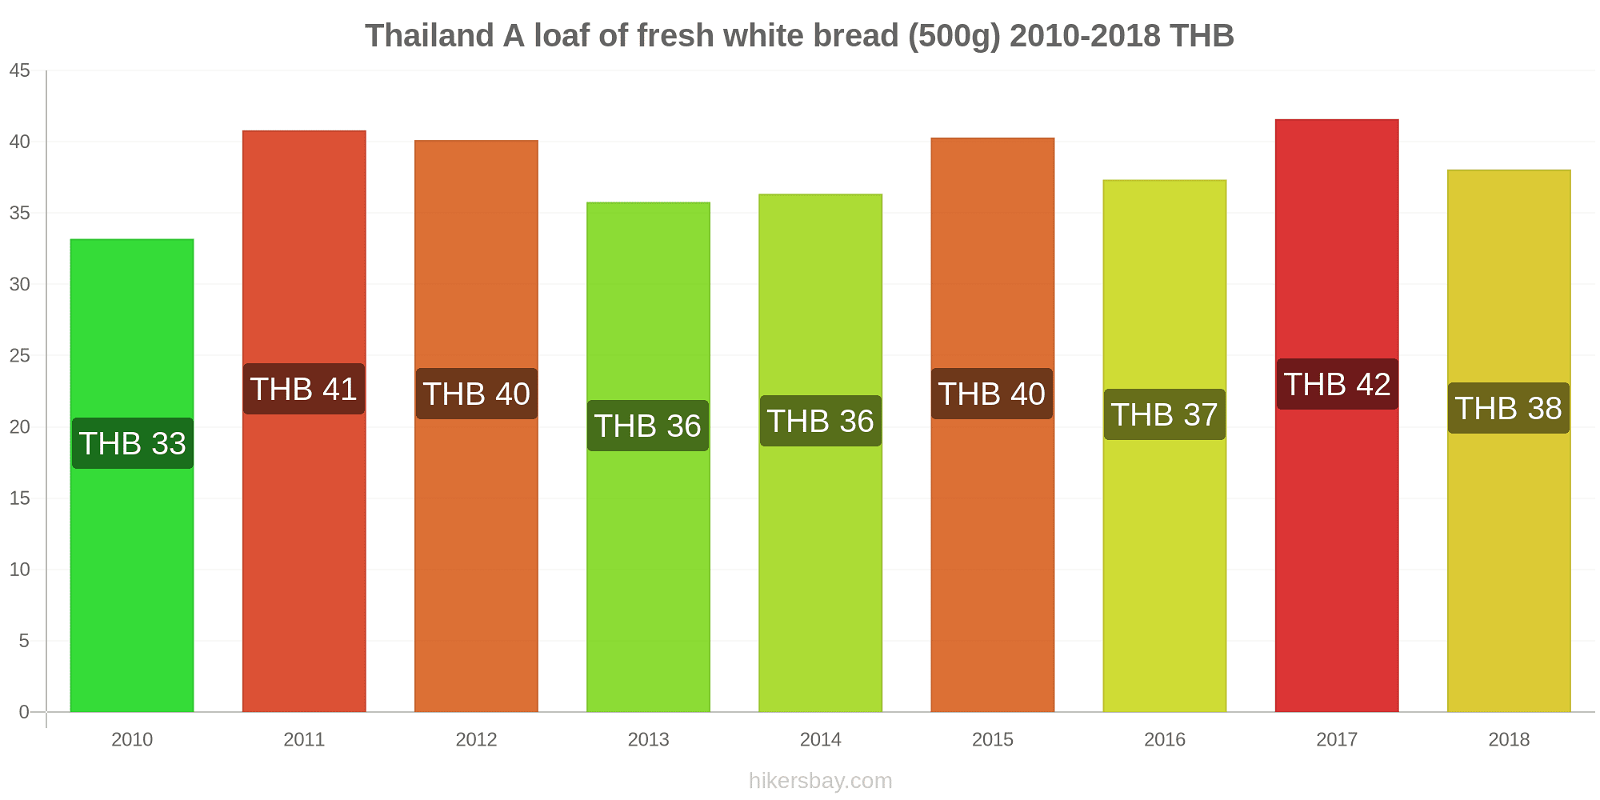 Thailand price changes A loaf of fresh white bread (500g) hikersbay.com